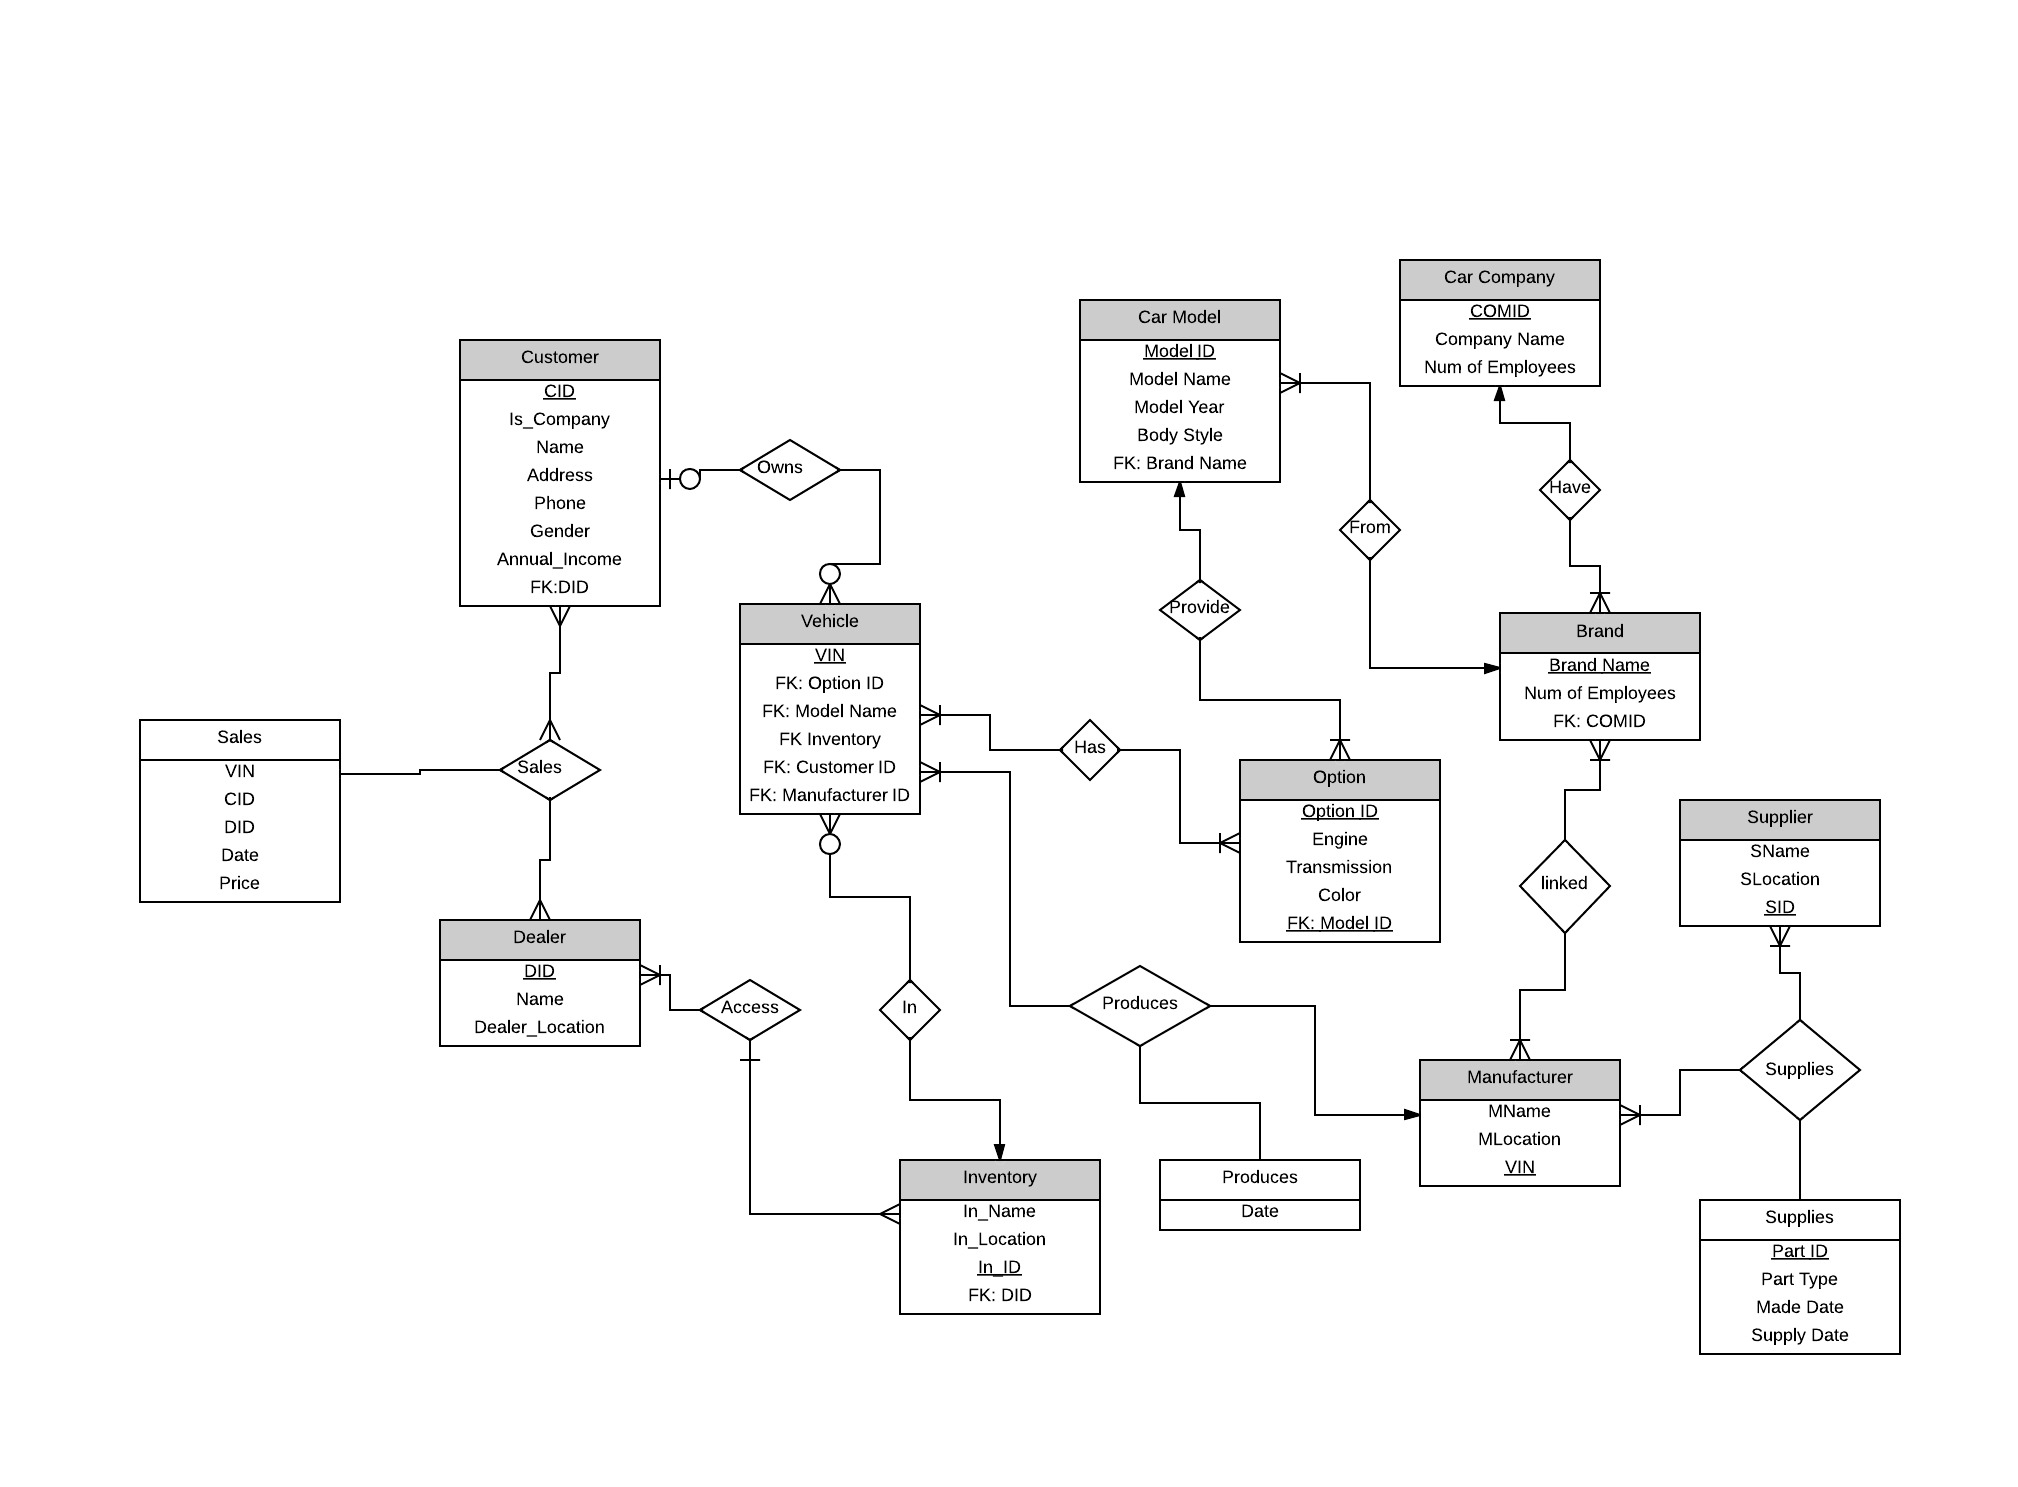 Need Help On An Er Diagram For An Automobile Company - Stack for Company Er Diagram